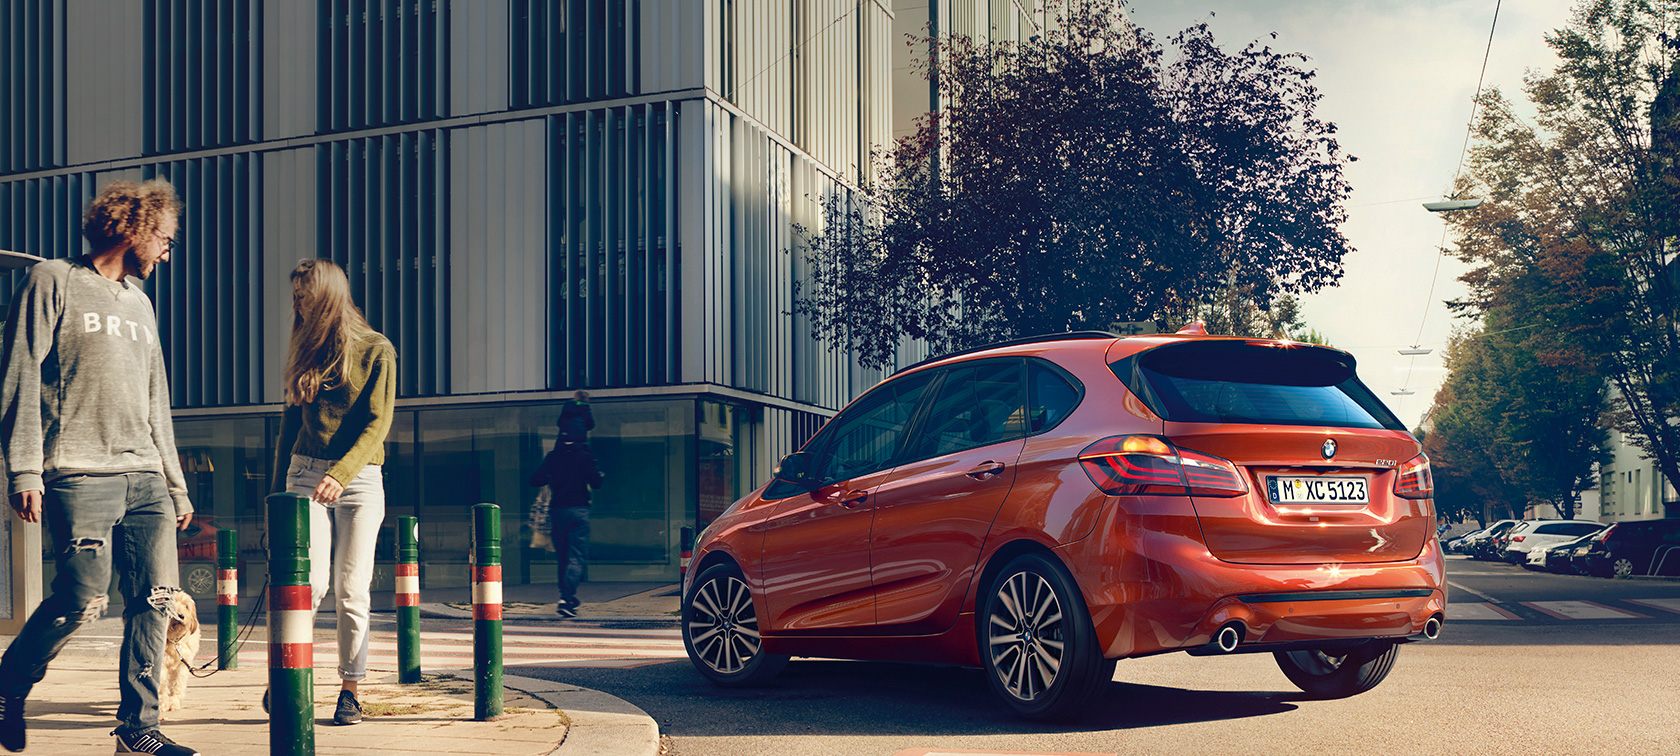 BMW 2 Series Active Tourer 220i F45 Facelift 2018 Sunset Orange metallic three-quarter rear view driving on the road